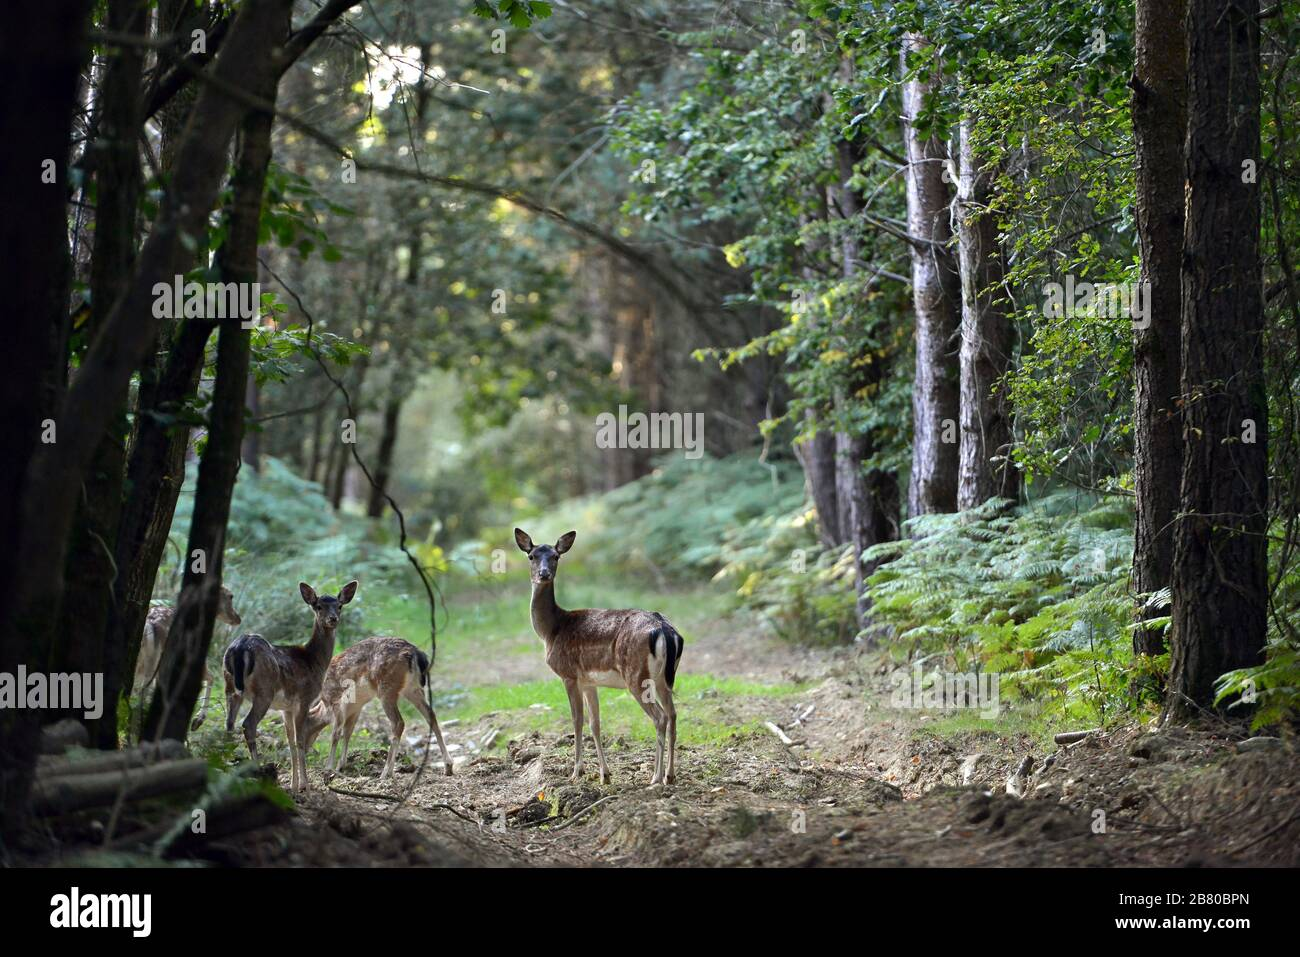 Roe deer in a forest clearing at dawn. Stock Photo